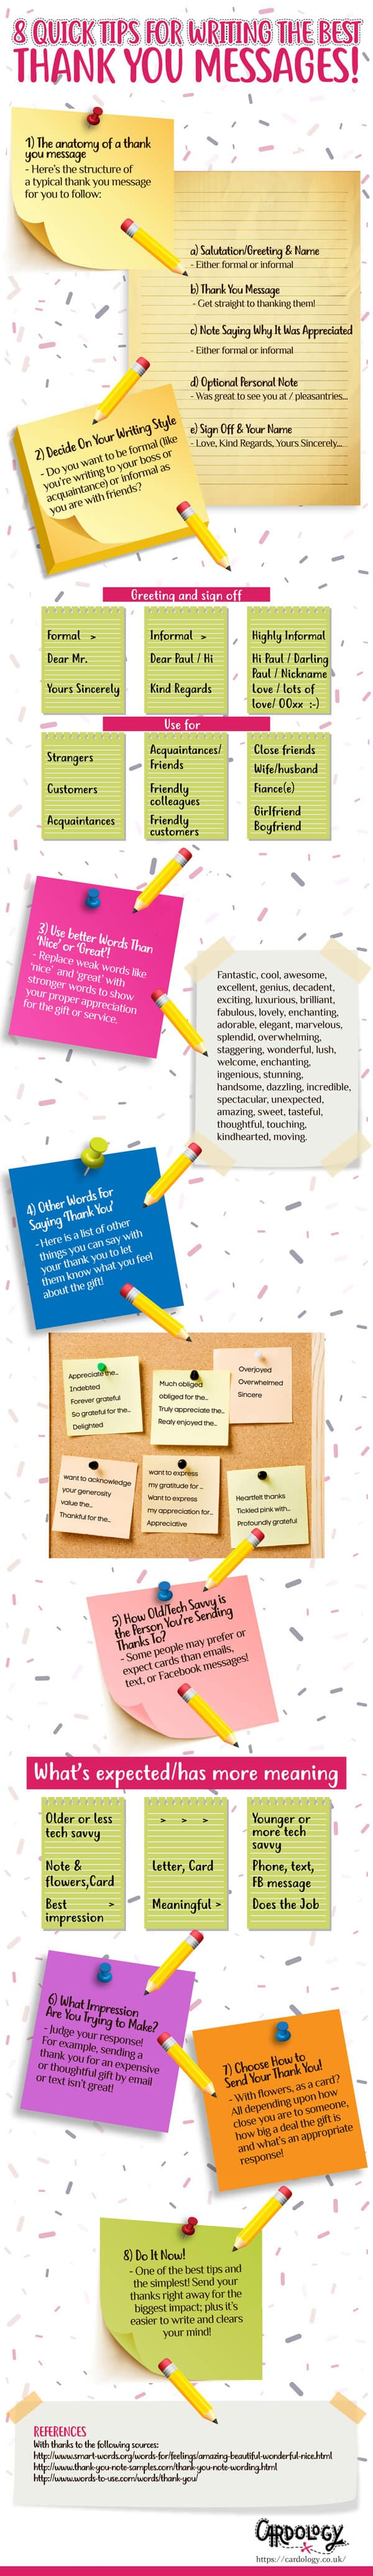 8 thank you note tips infographic